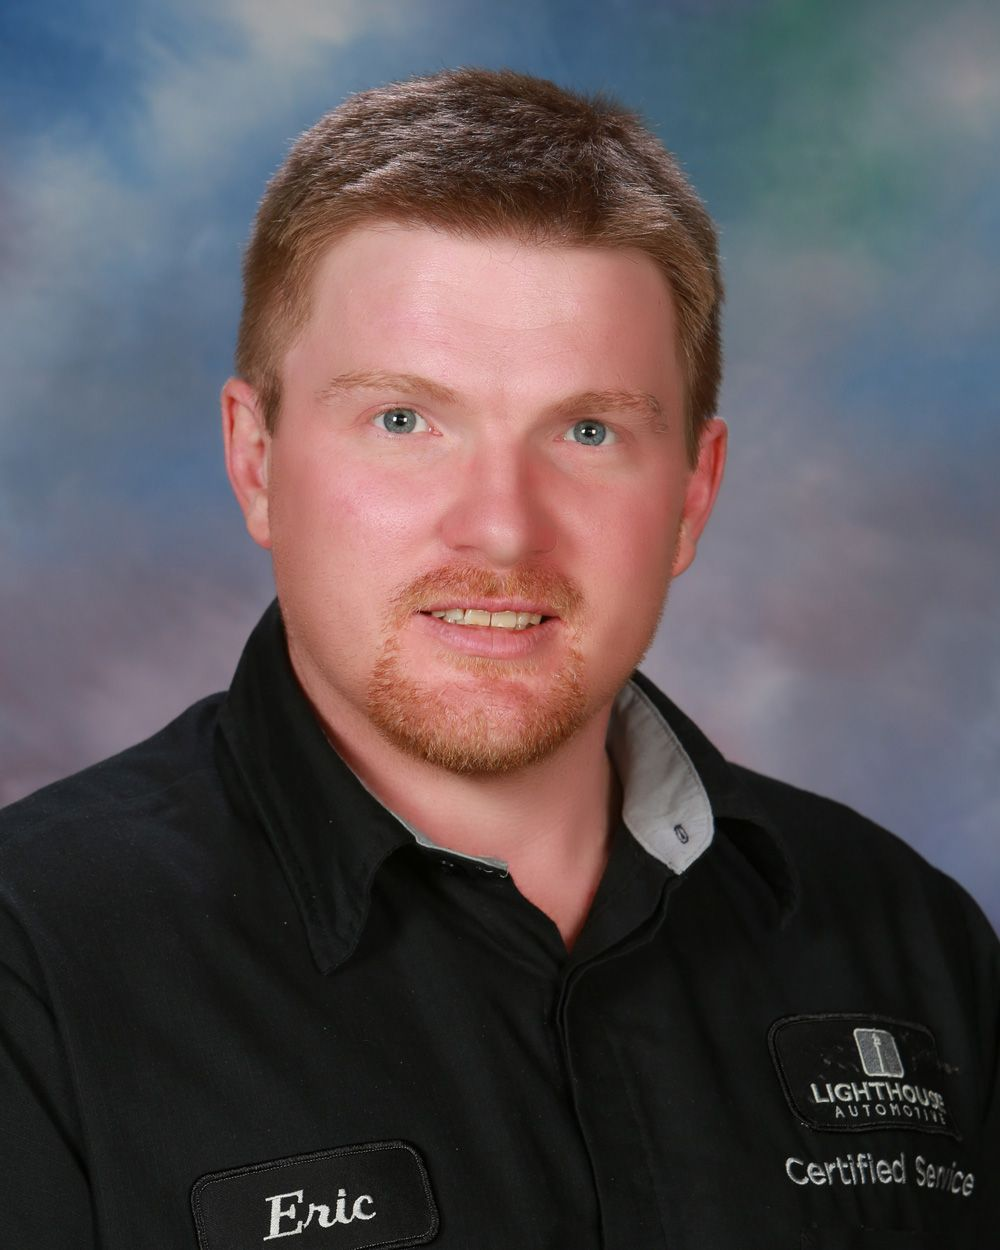 Lighthouse is pleased to welcome Eric Johnston to our team! Eric is in our detail department and is doing a fantastic job. Eric, we appreciate your hard work and joyful demeanor.